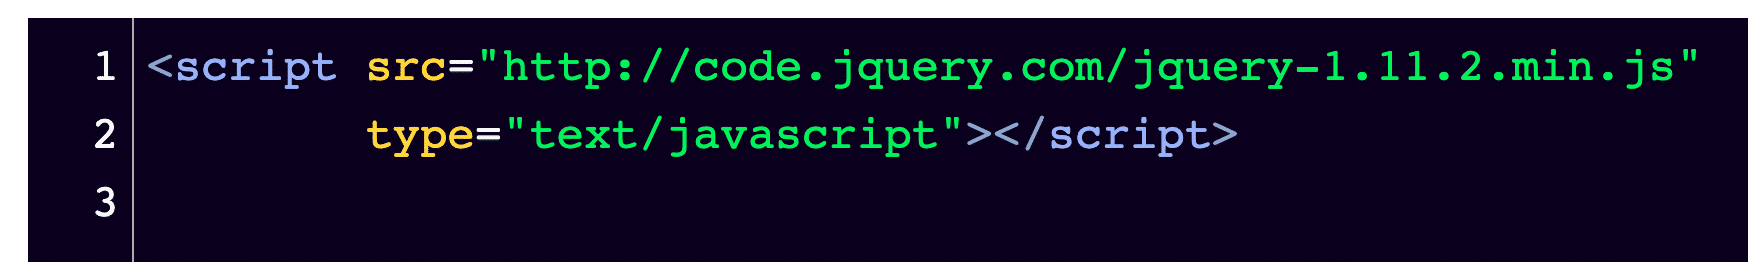 Your snippet of text should look like this in your code editor.